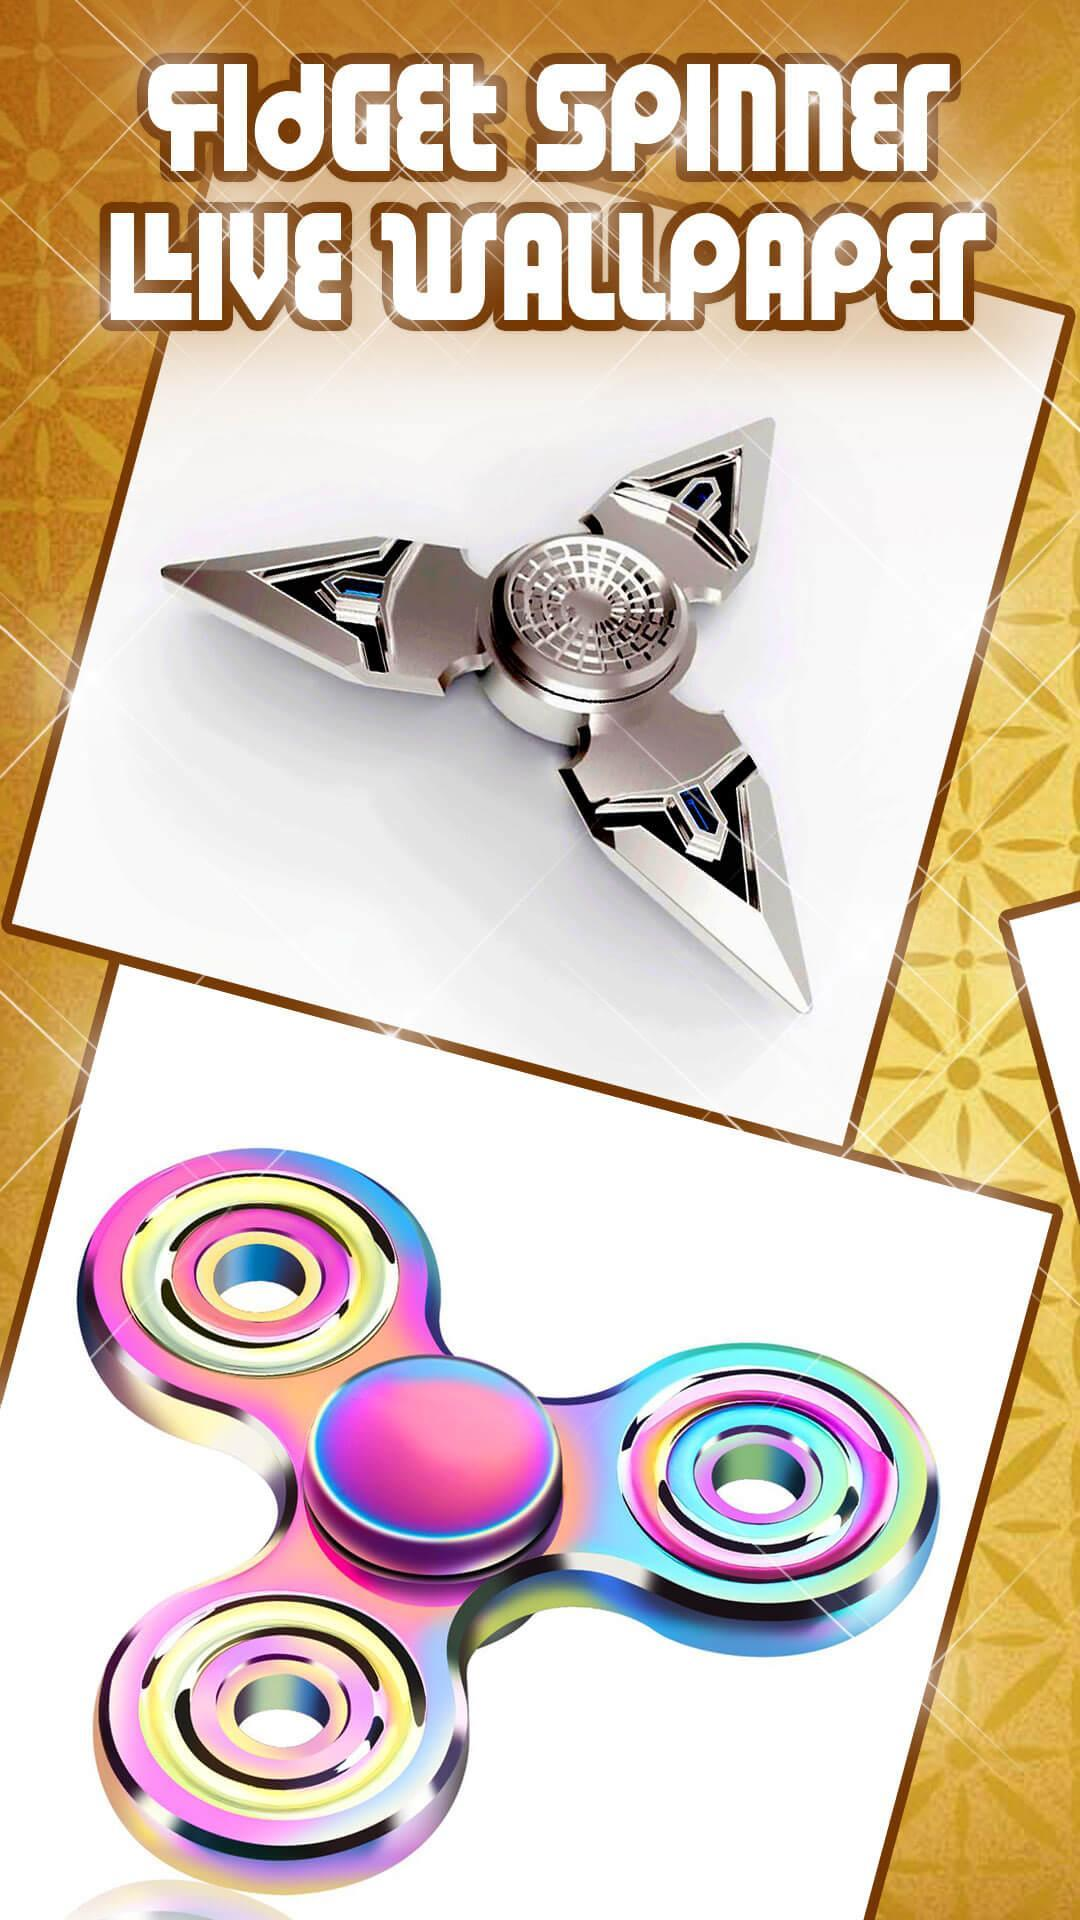 Fid Spinner Wallpaper Animasi GIF Gambar Lucu For